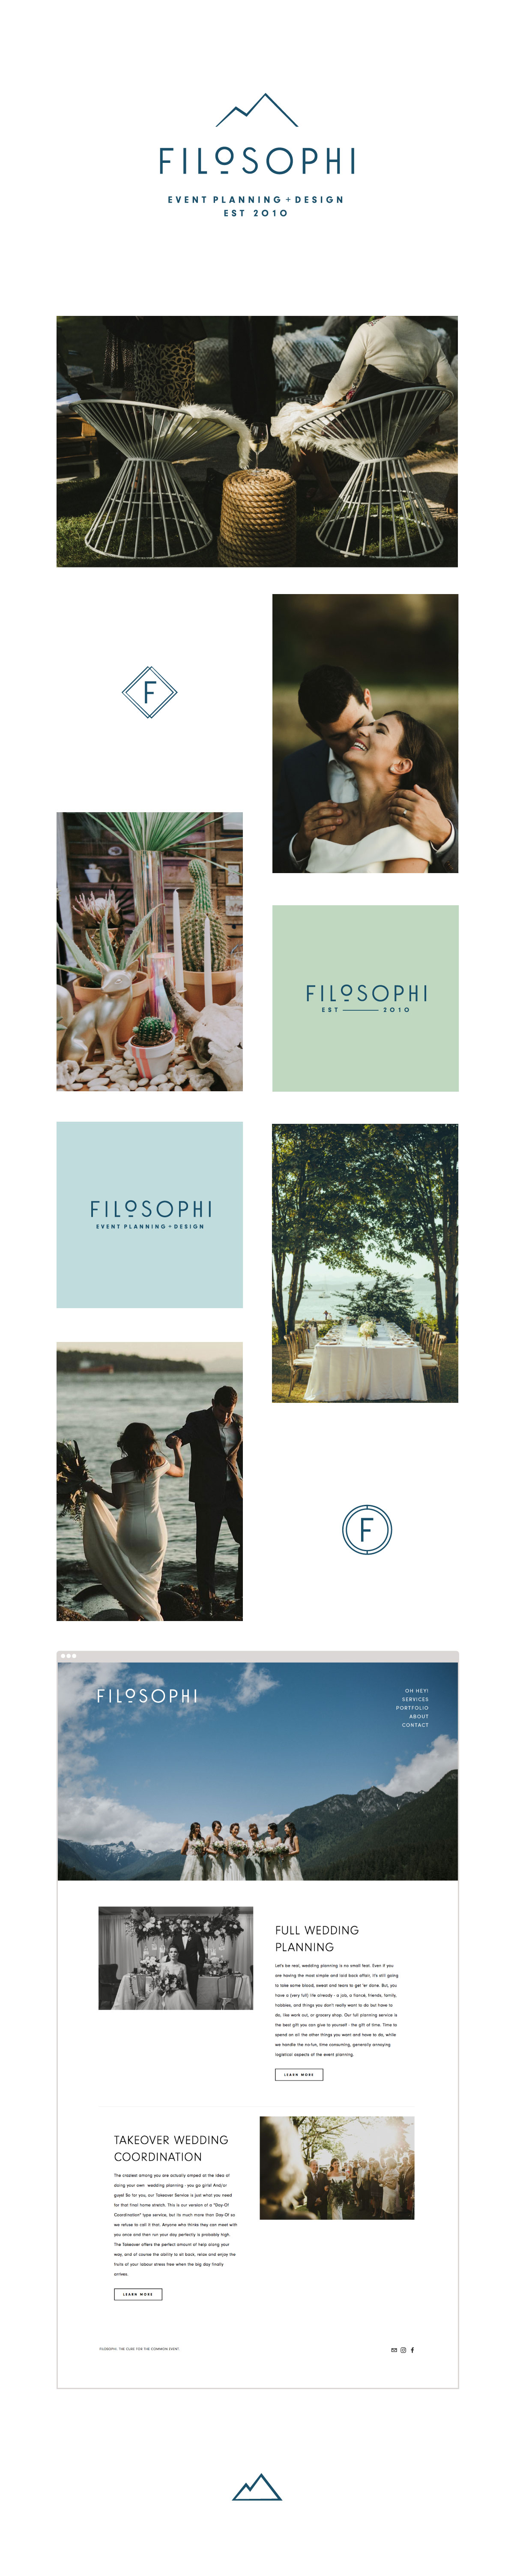 Filosophi Wedding + Event Planning Branding | www.alicia-carvalho.com